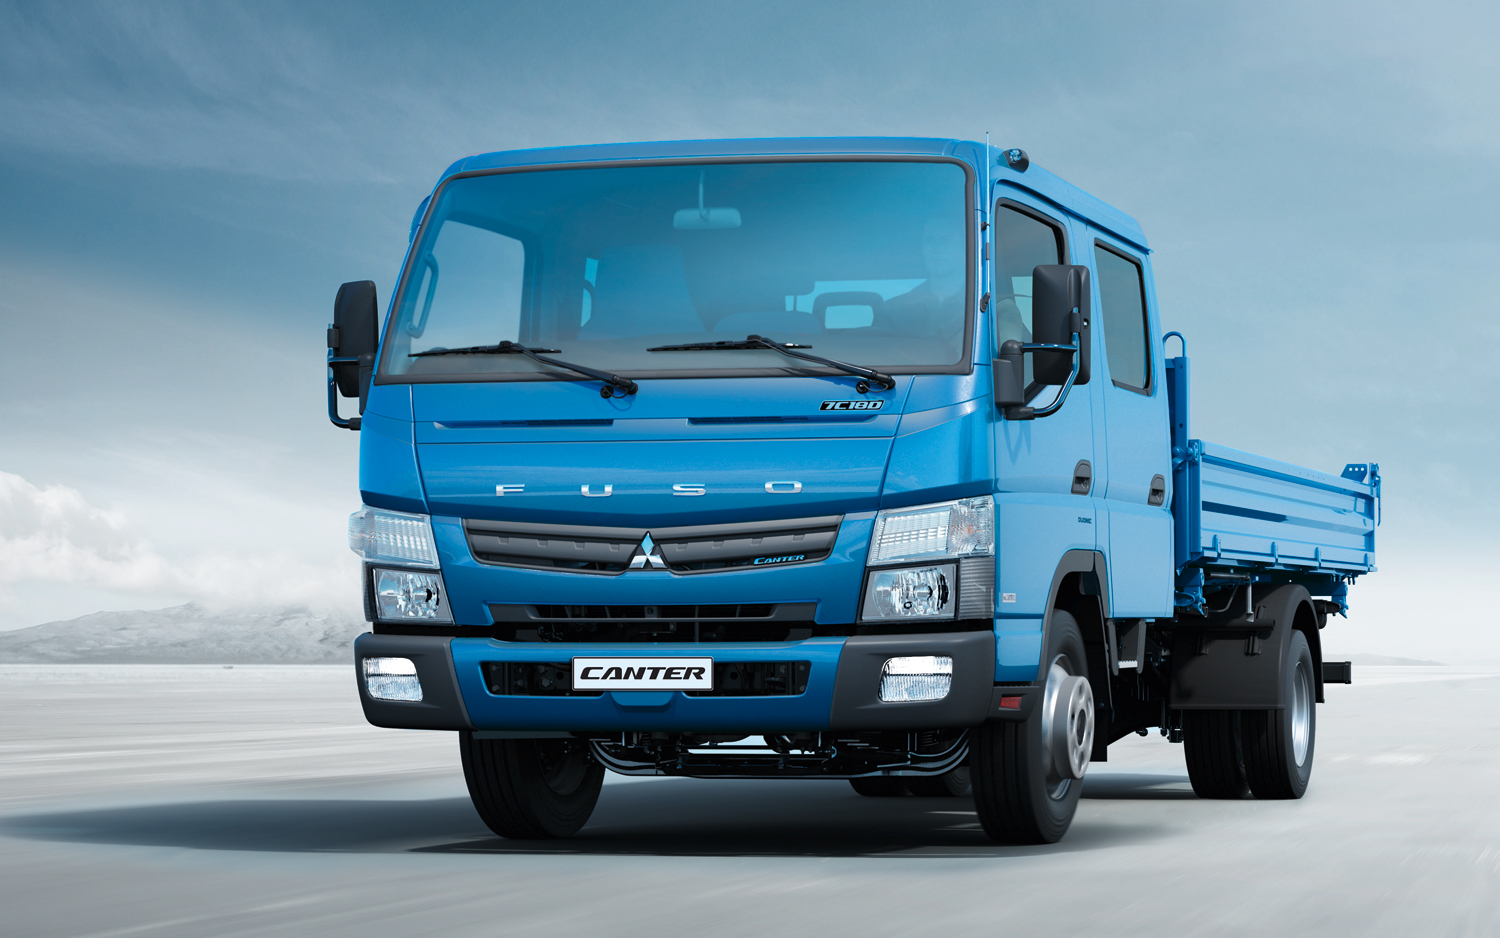 Mitsubishi Fuso Canter technical details, history, photos on Better Parts LTD